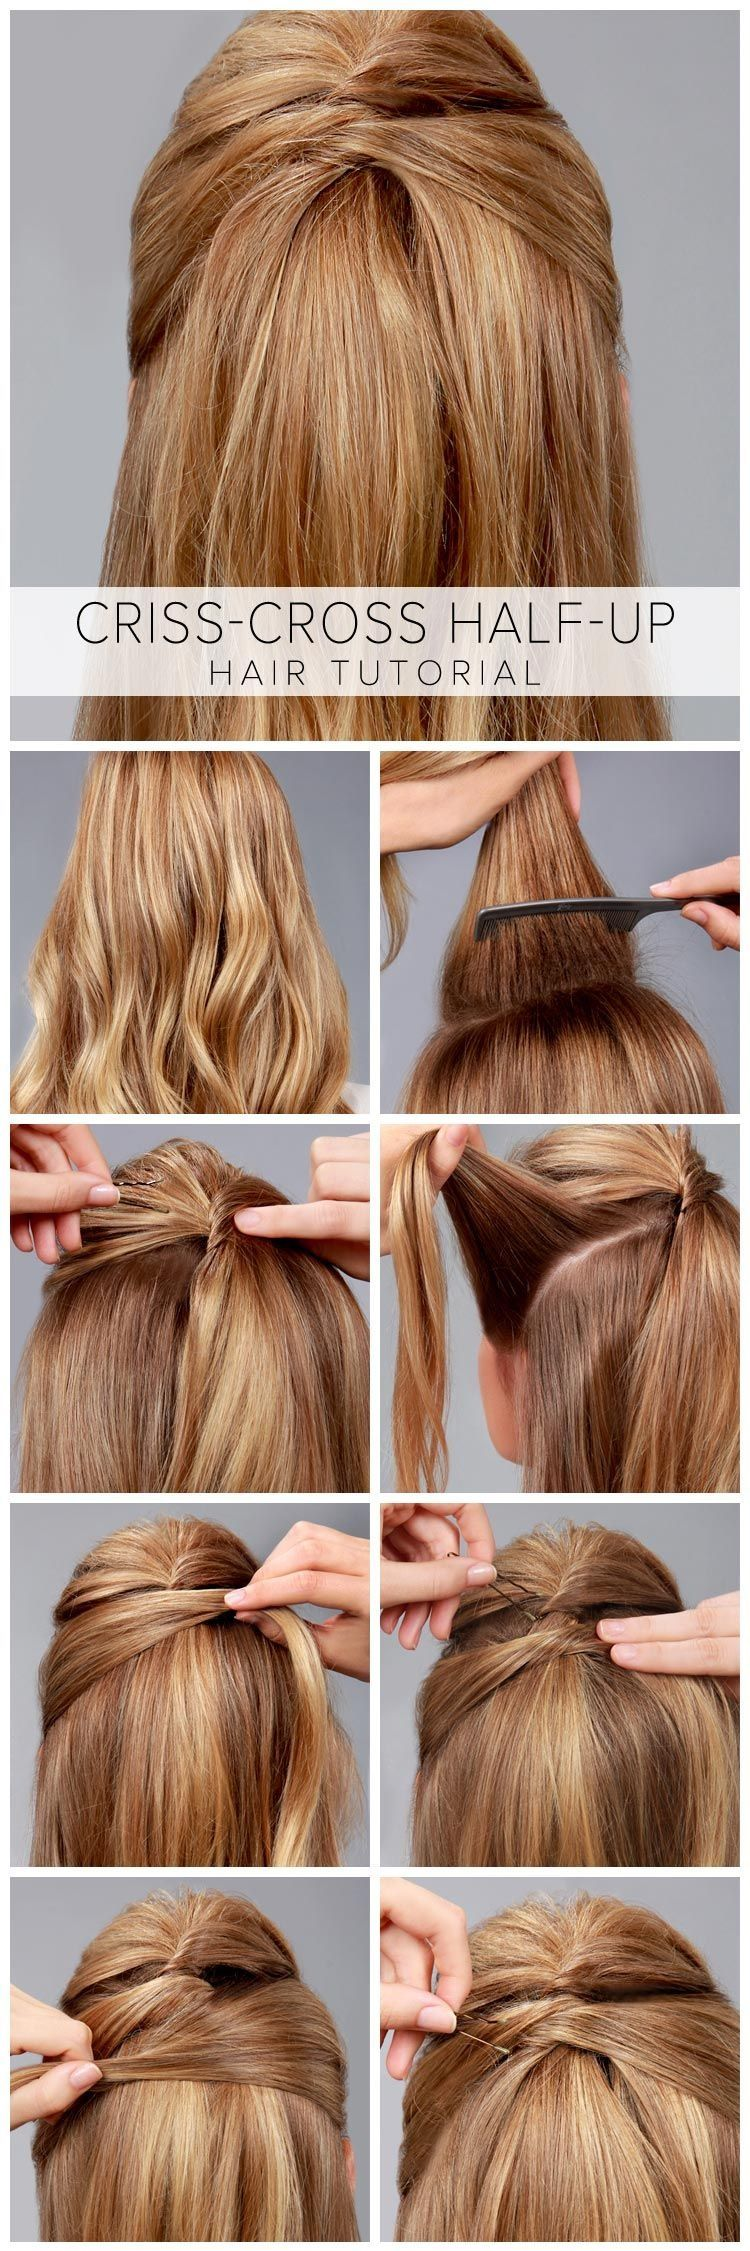 25 Five Minute Or Less Hairstyles That Ll Save You From Busy Mornings Hair Styles Long Hair Styles Long Hair Tutorial